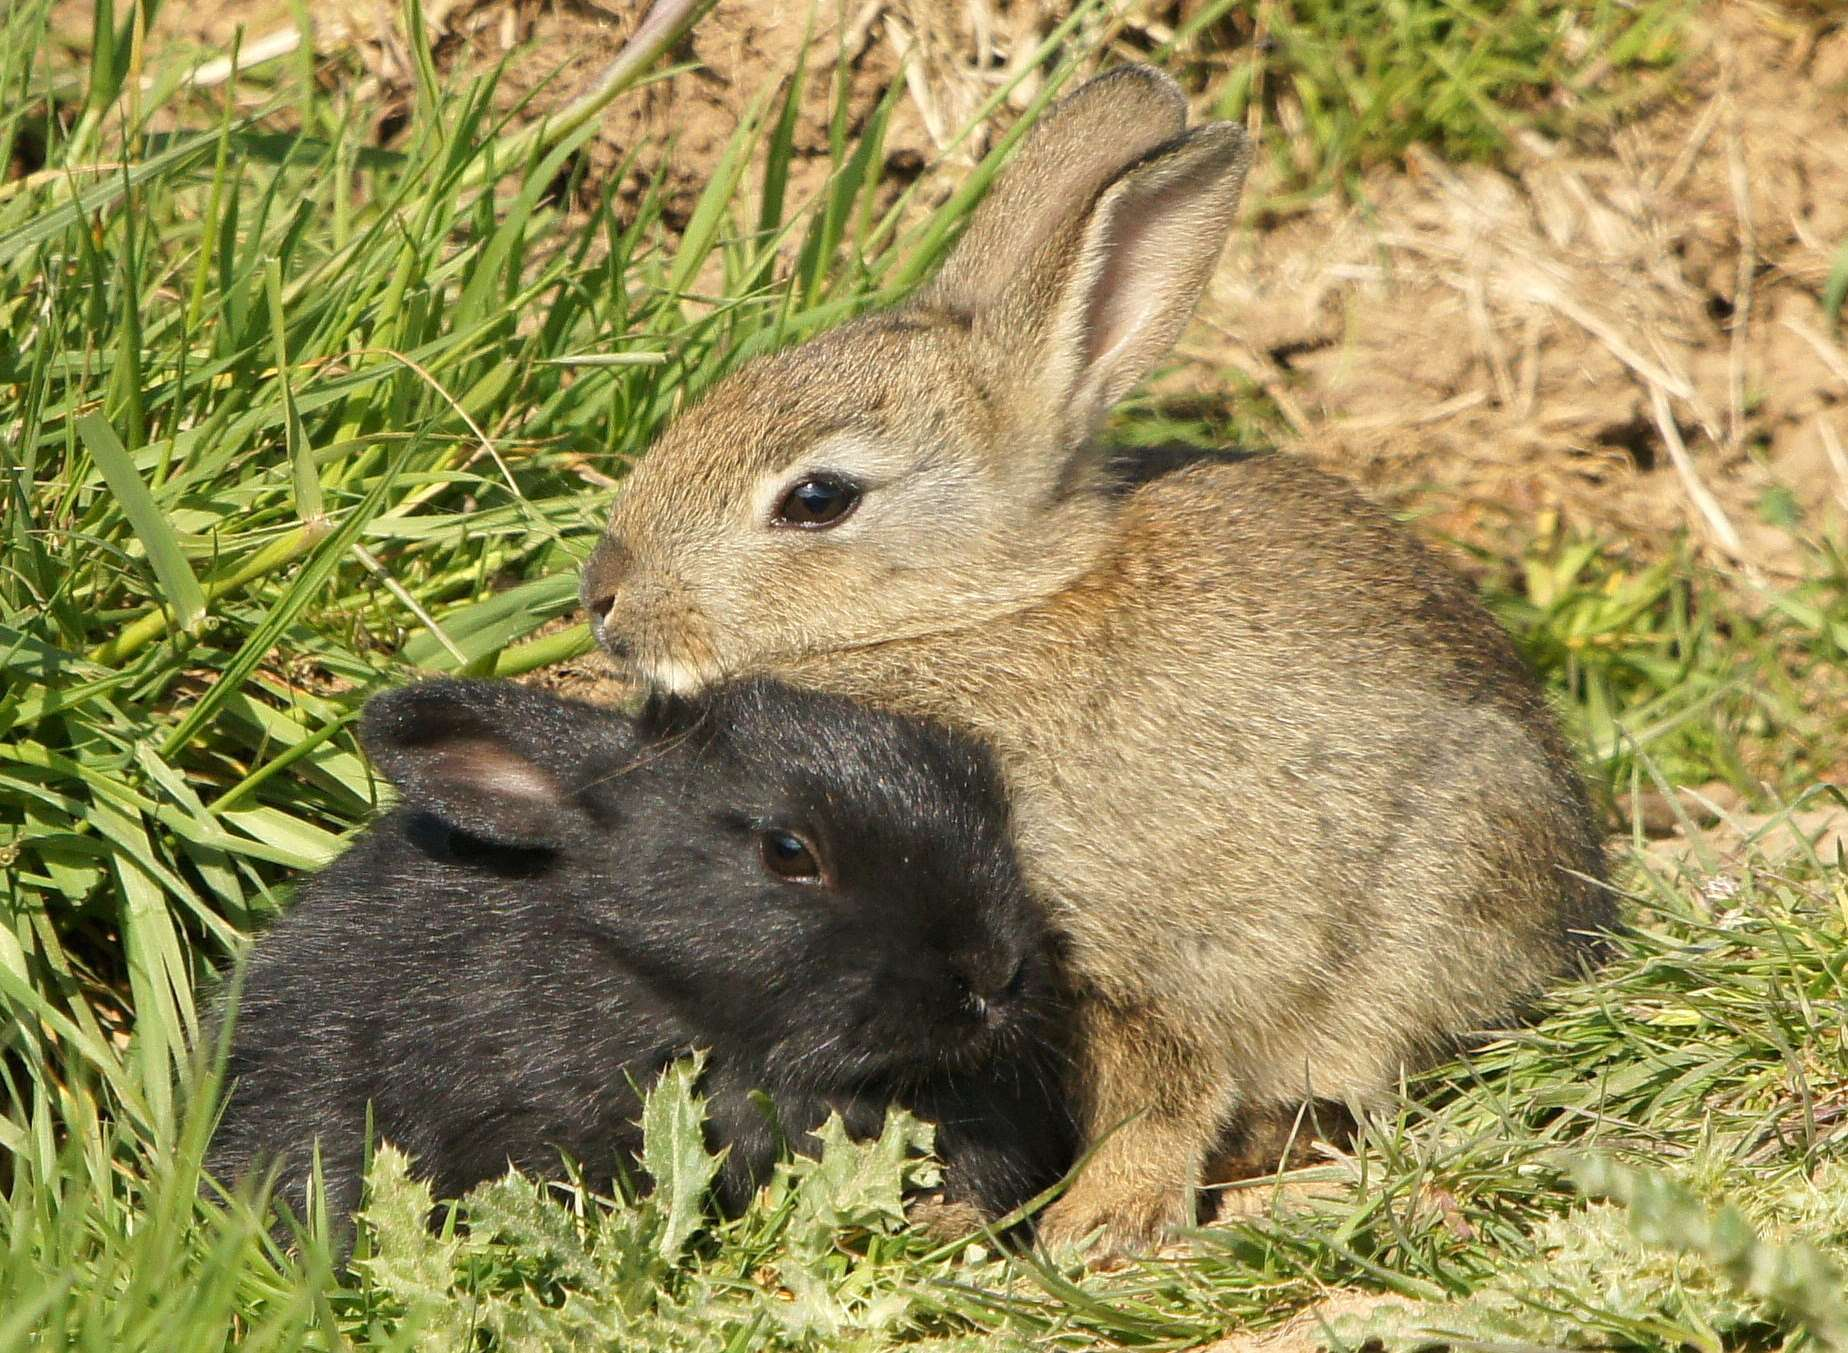 Three wild rabbits were found shot by the side of a road. Stock pic